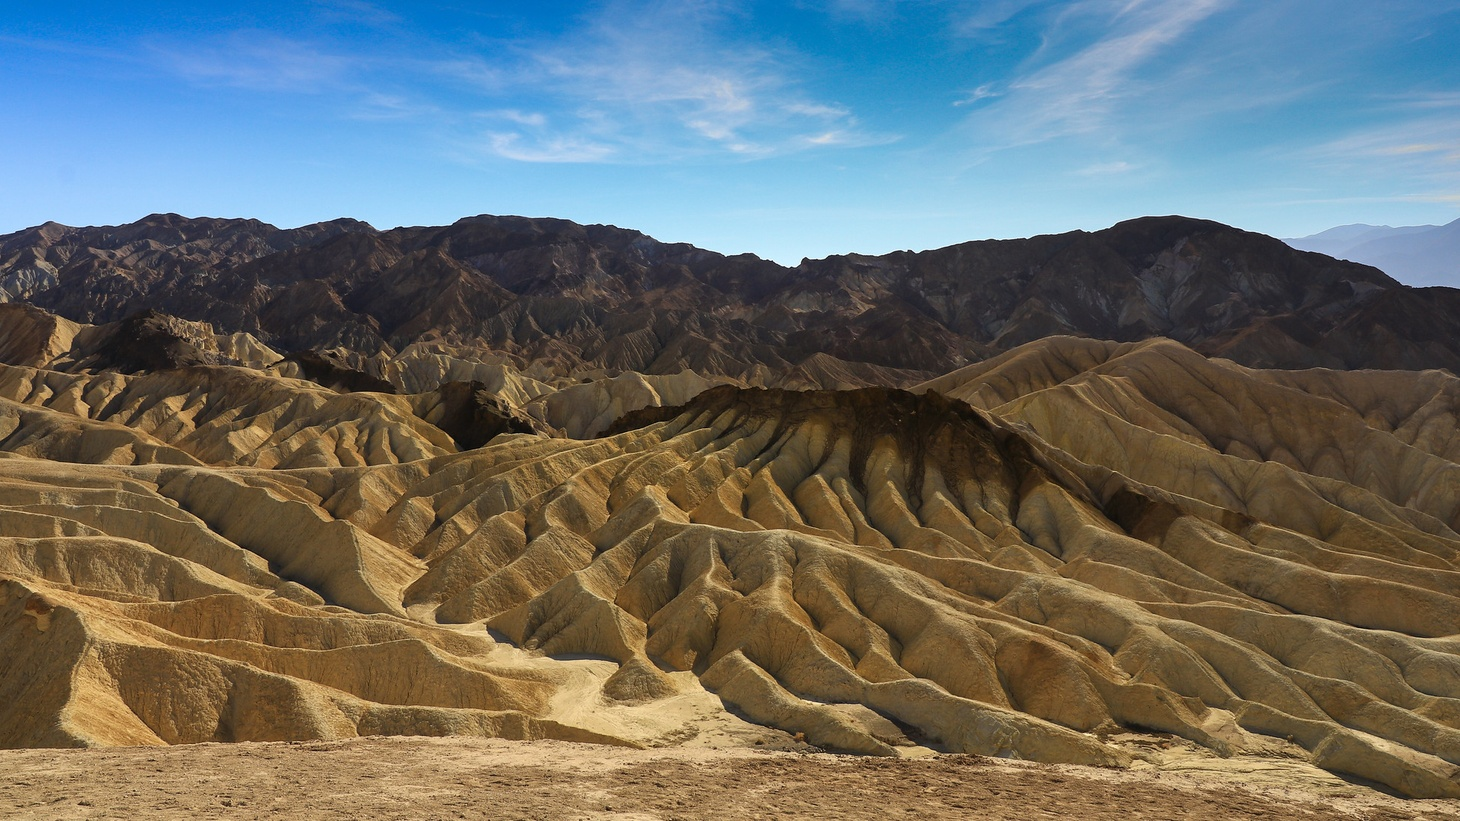 Death Valley National Park. Nearby, one area is seeing a renewed effort in gold mining. But tribal nations and environmental groups say that's disrupting wildlife and the lands.